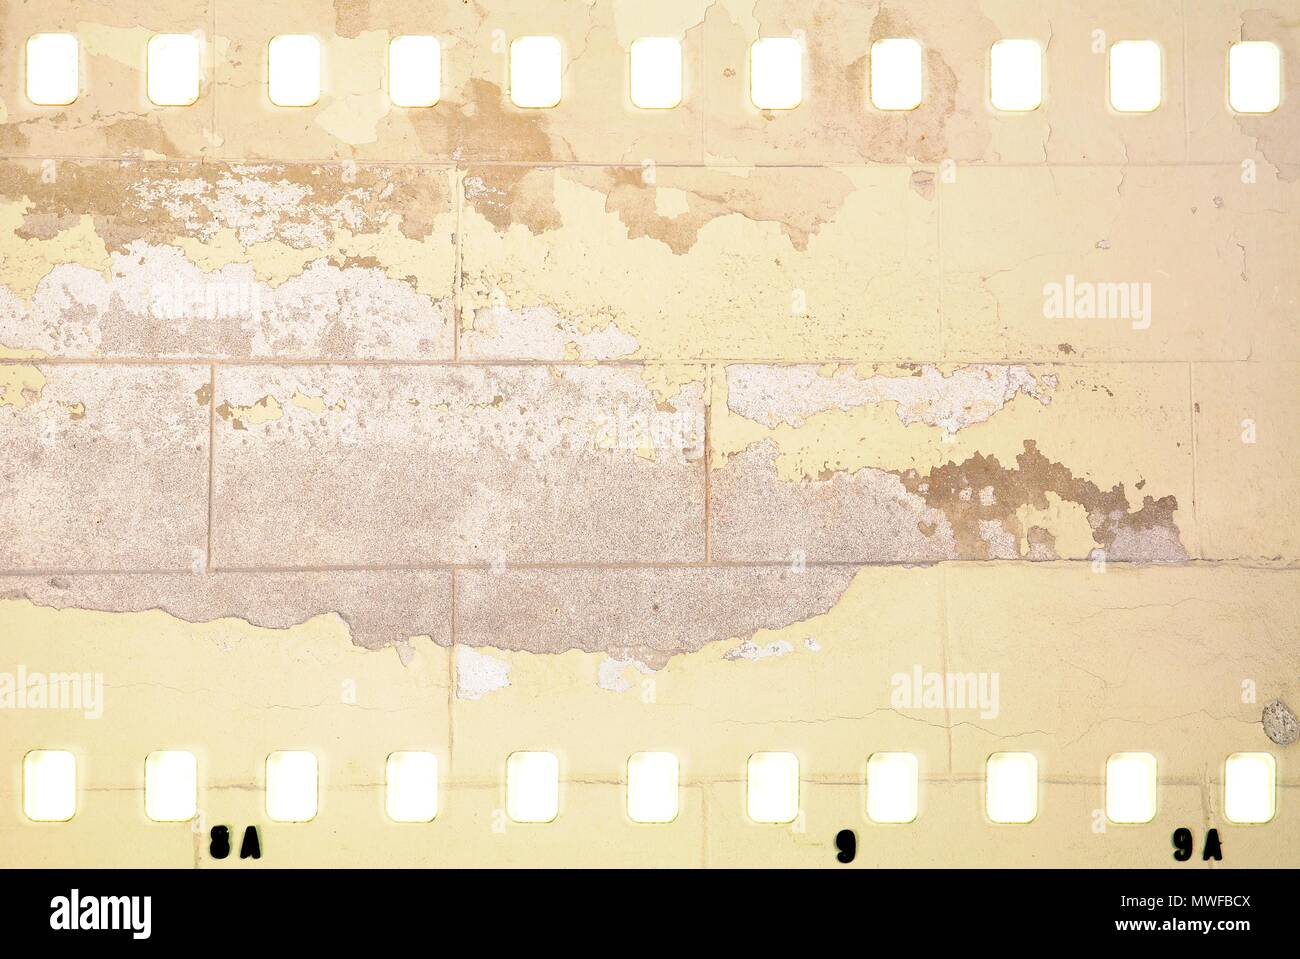 Grunge dripping cracked film strip frame in sepia tones. Damaged brick wall surface. - Stock Image